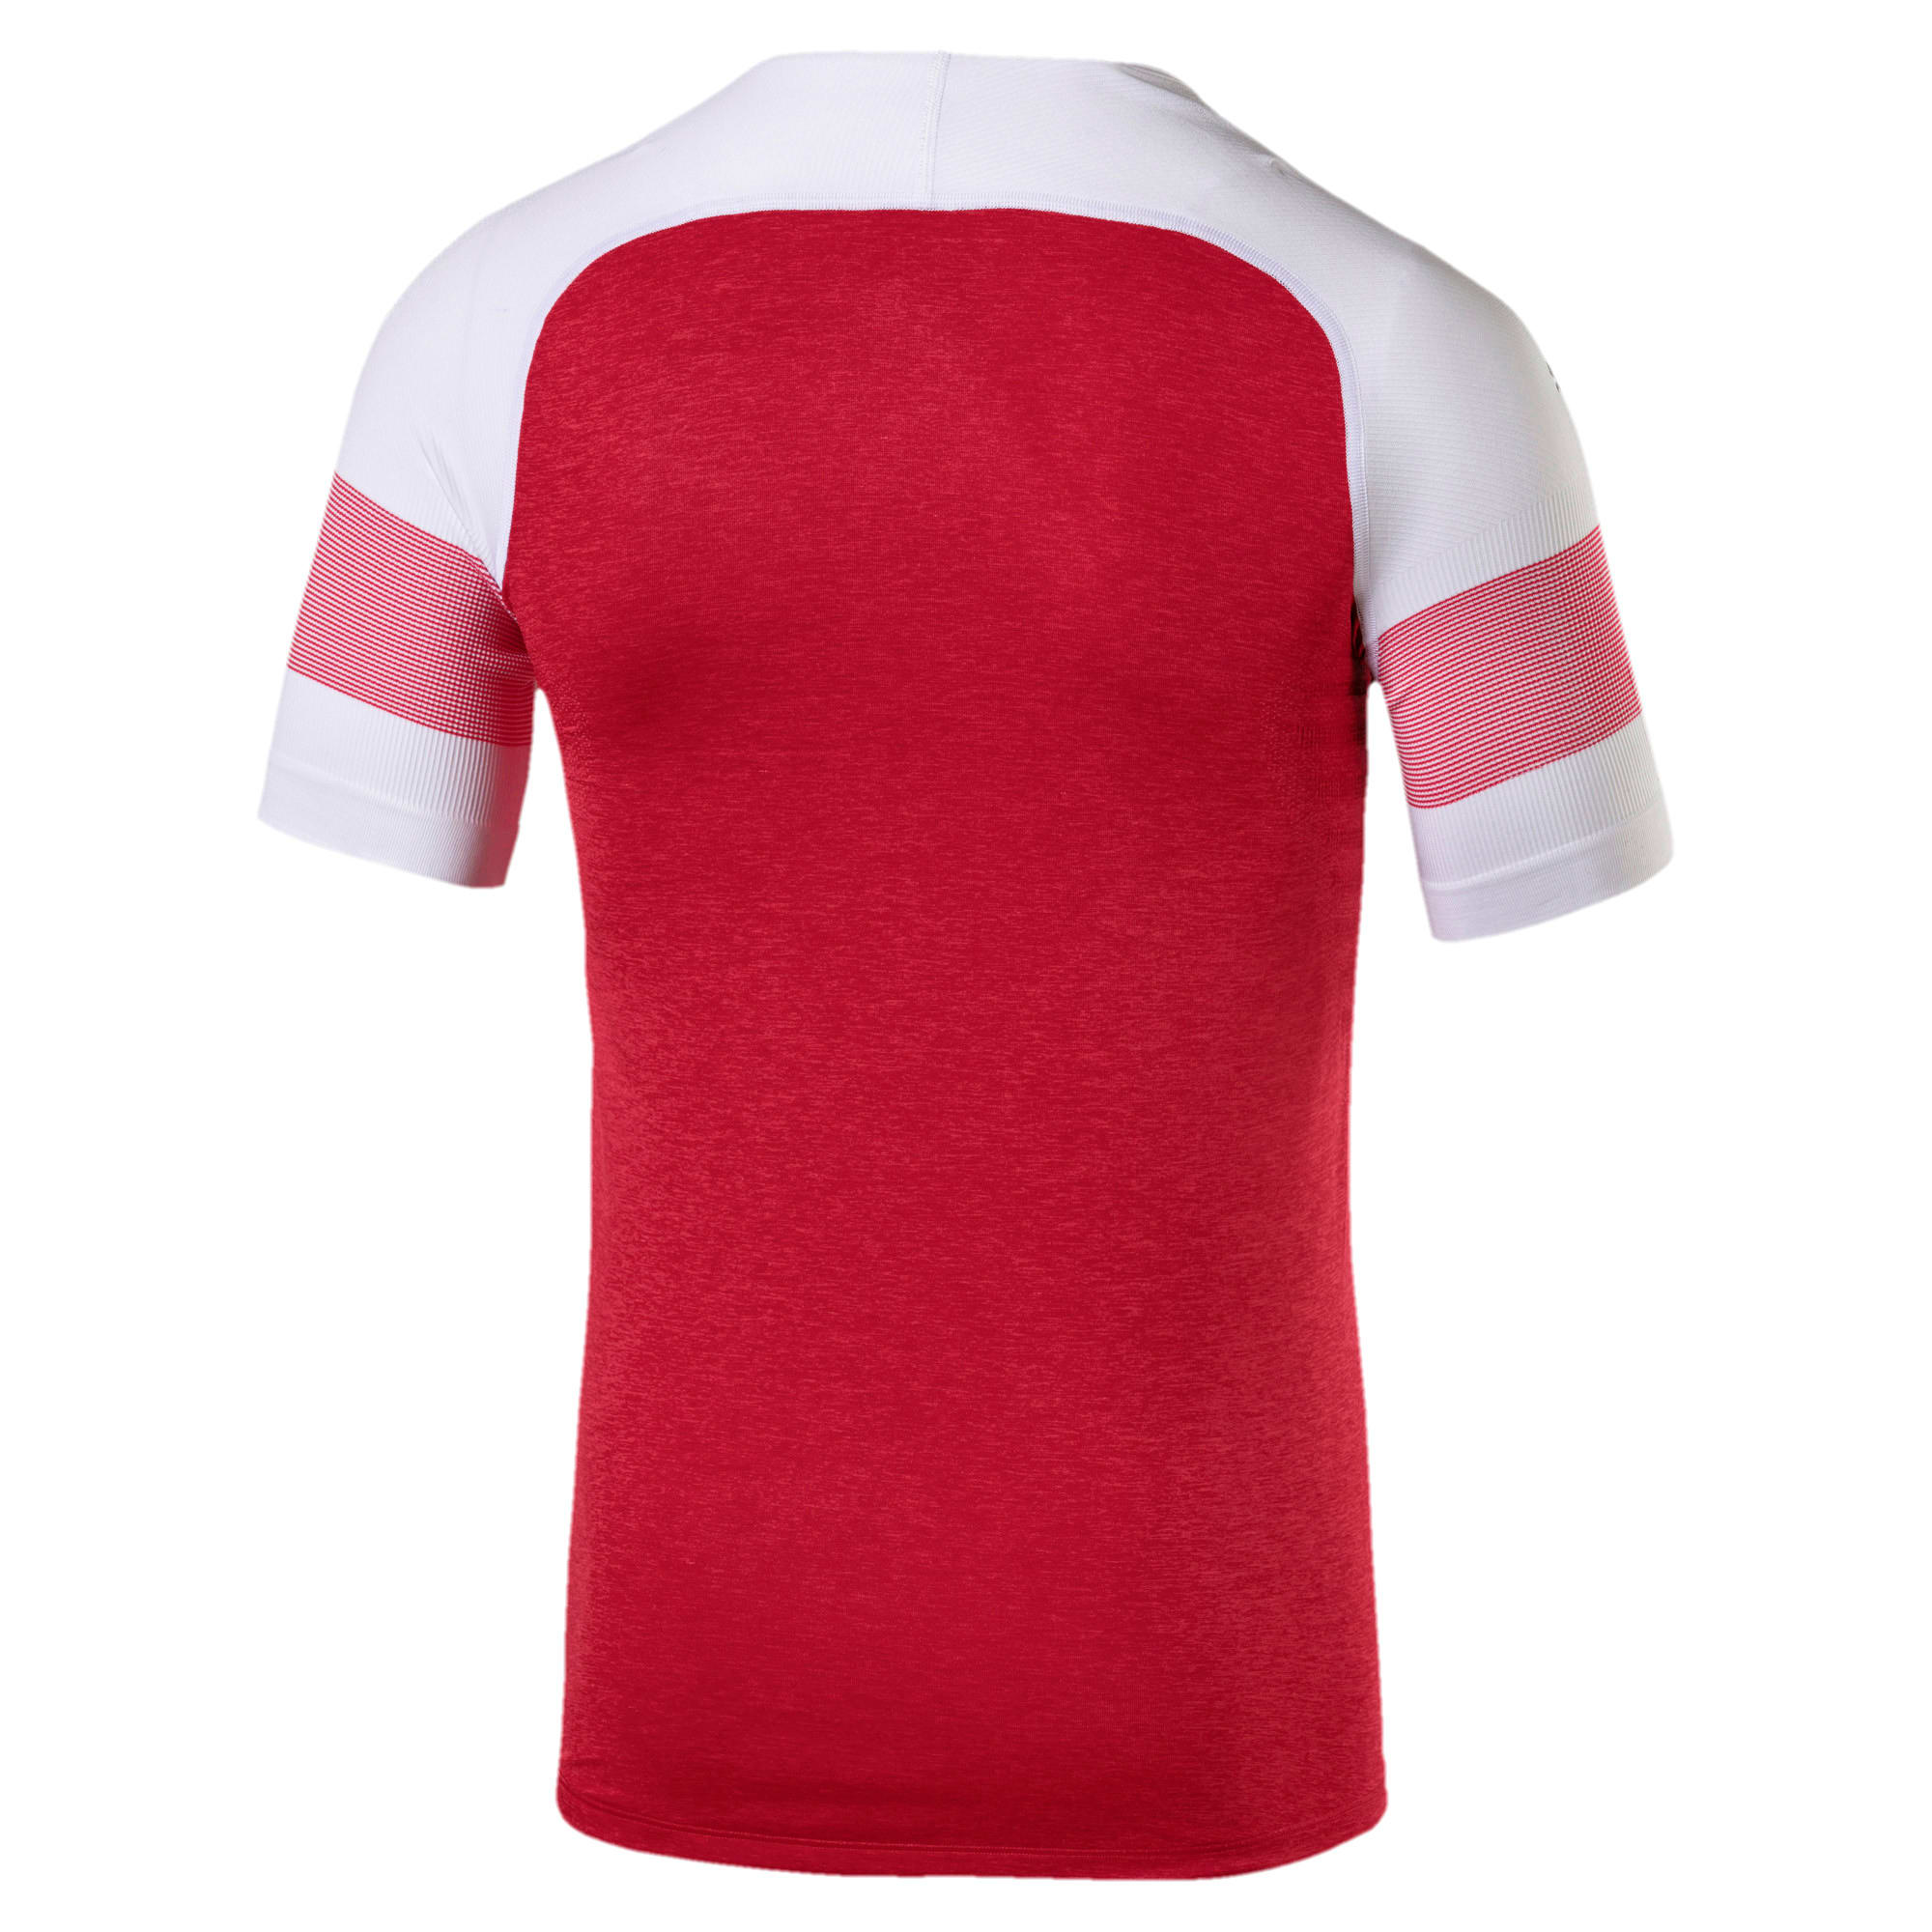 Thumbnail 2 of AFC Men's Home Authentic Jersey, Chili-White-Chili Pepper, medium